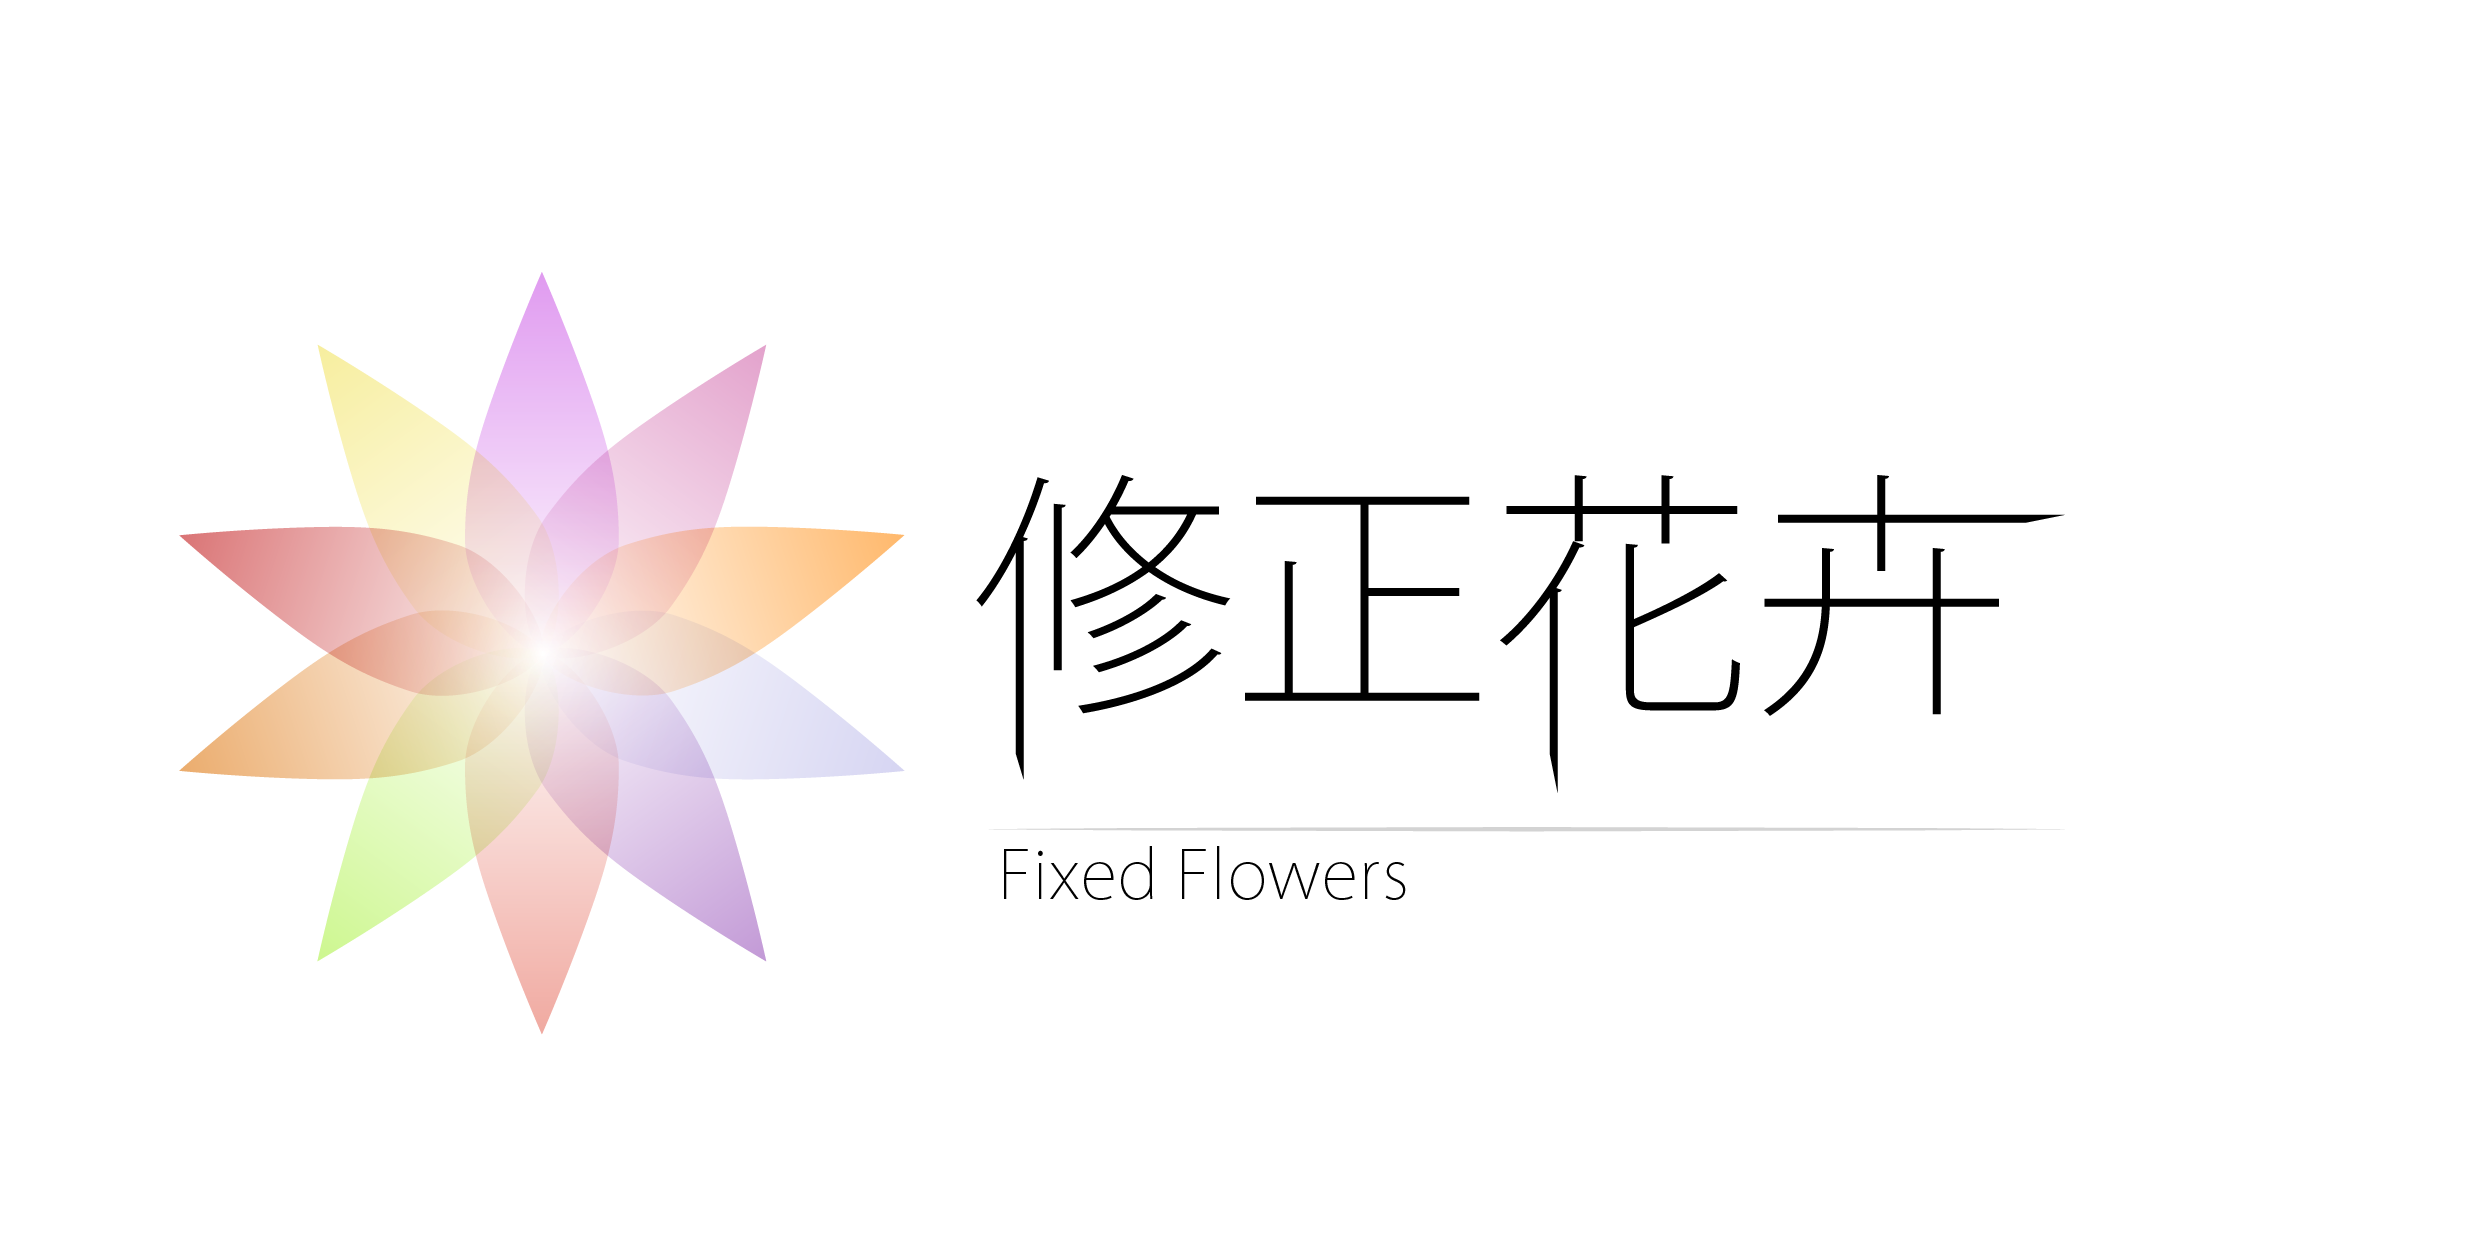 fixedflowers.png